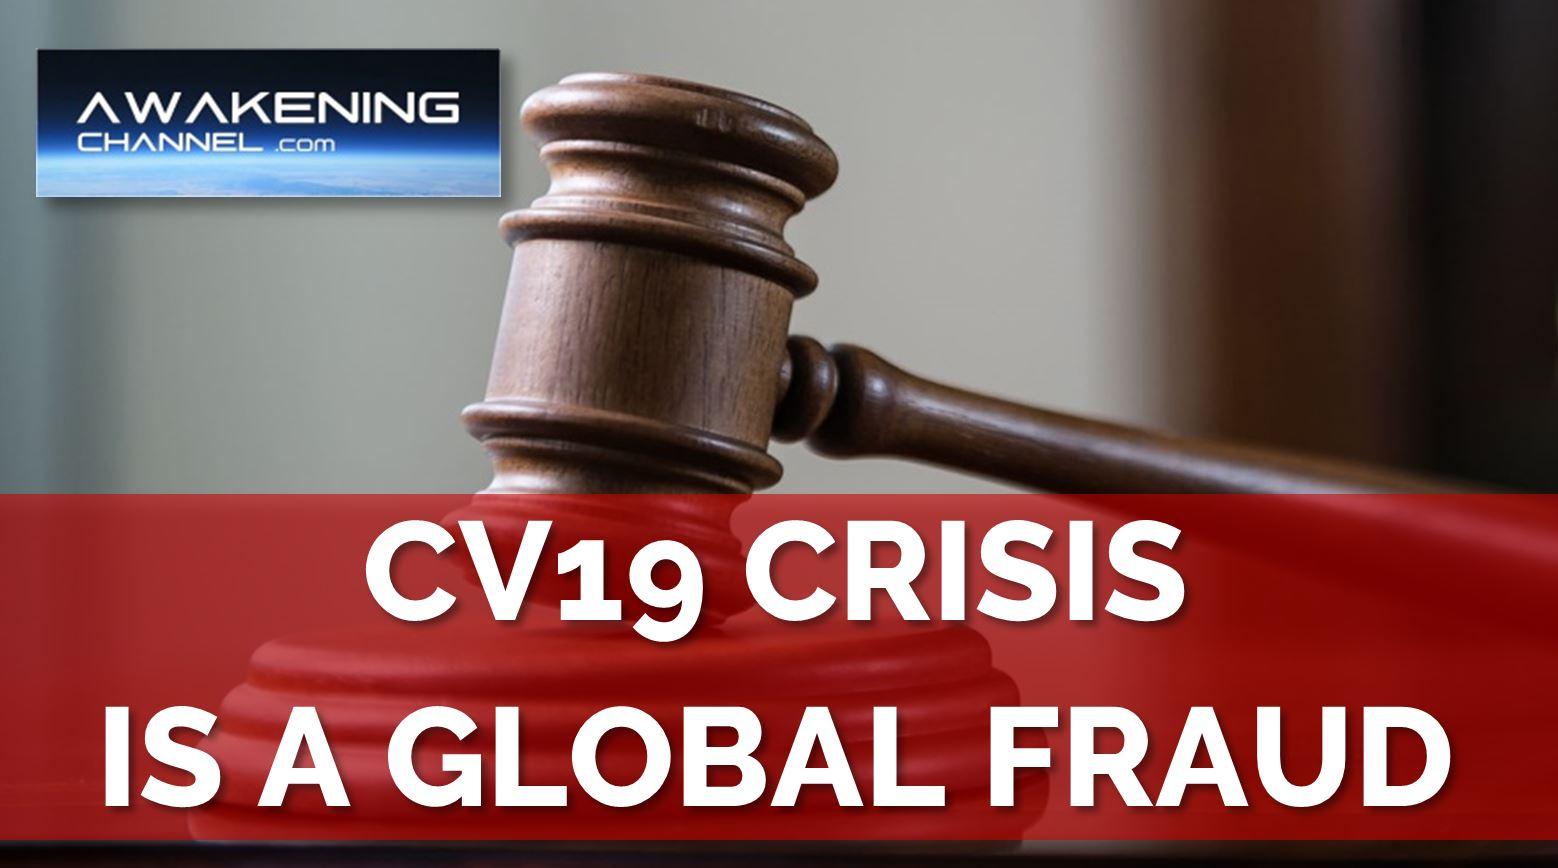 (18) International Network of Lawyers, the CV19 crisis is a Fraud and those Responsible will be sued (Part 18/20)